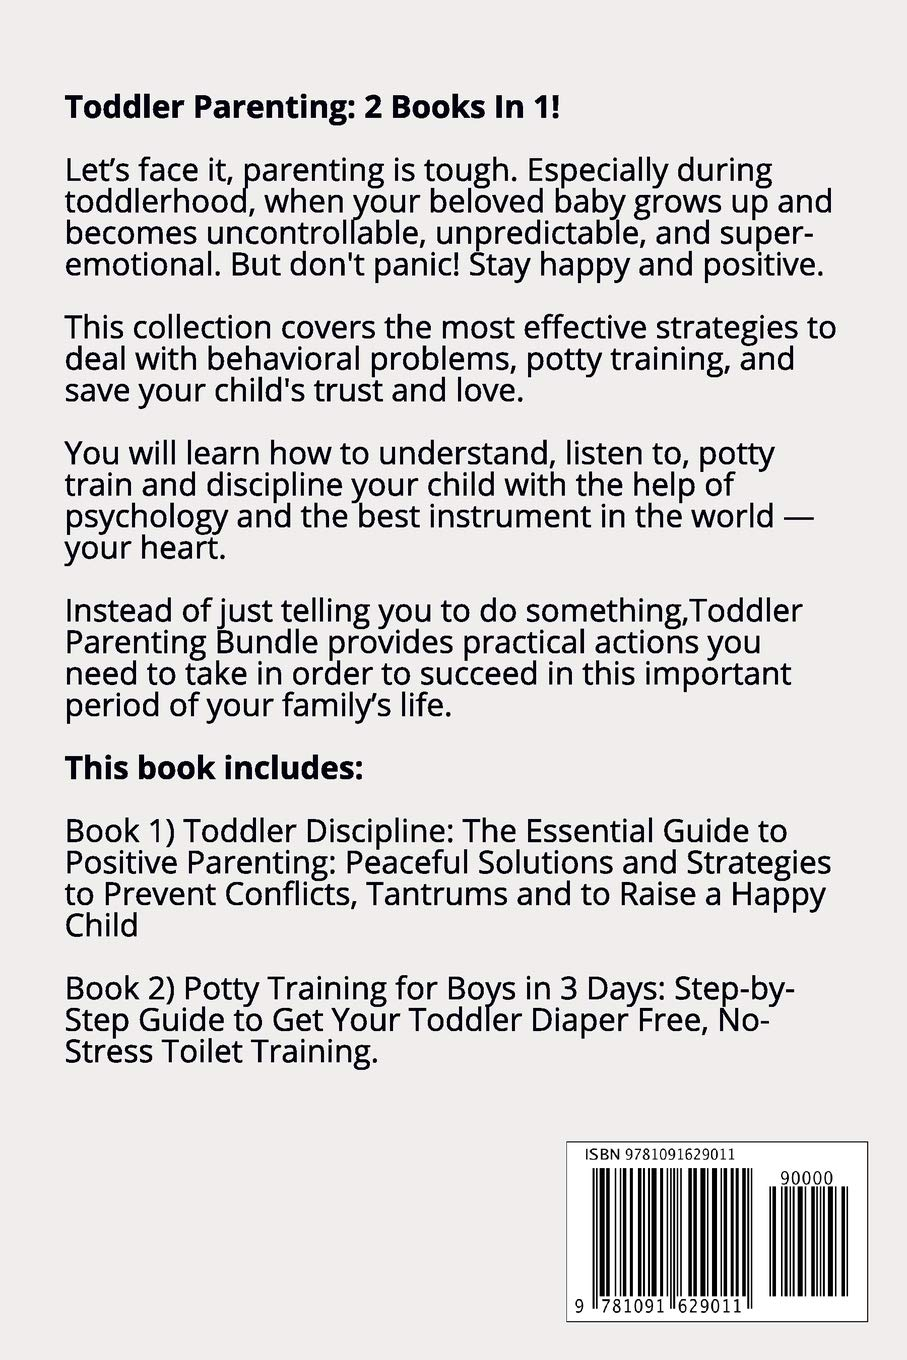 Potty Training for Boys in 3 Days The Essential Guide to Positive Parenting Toddler Discipline 2 Books in 1 Toddler Parenting